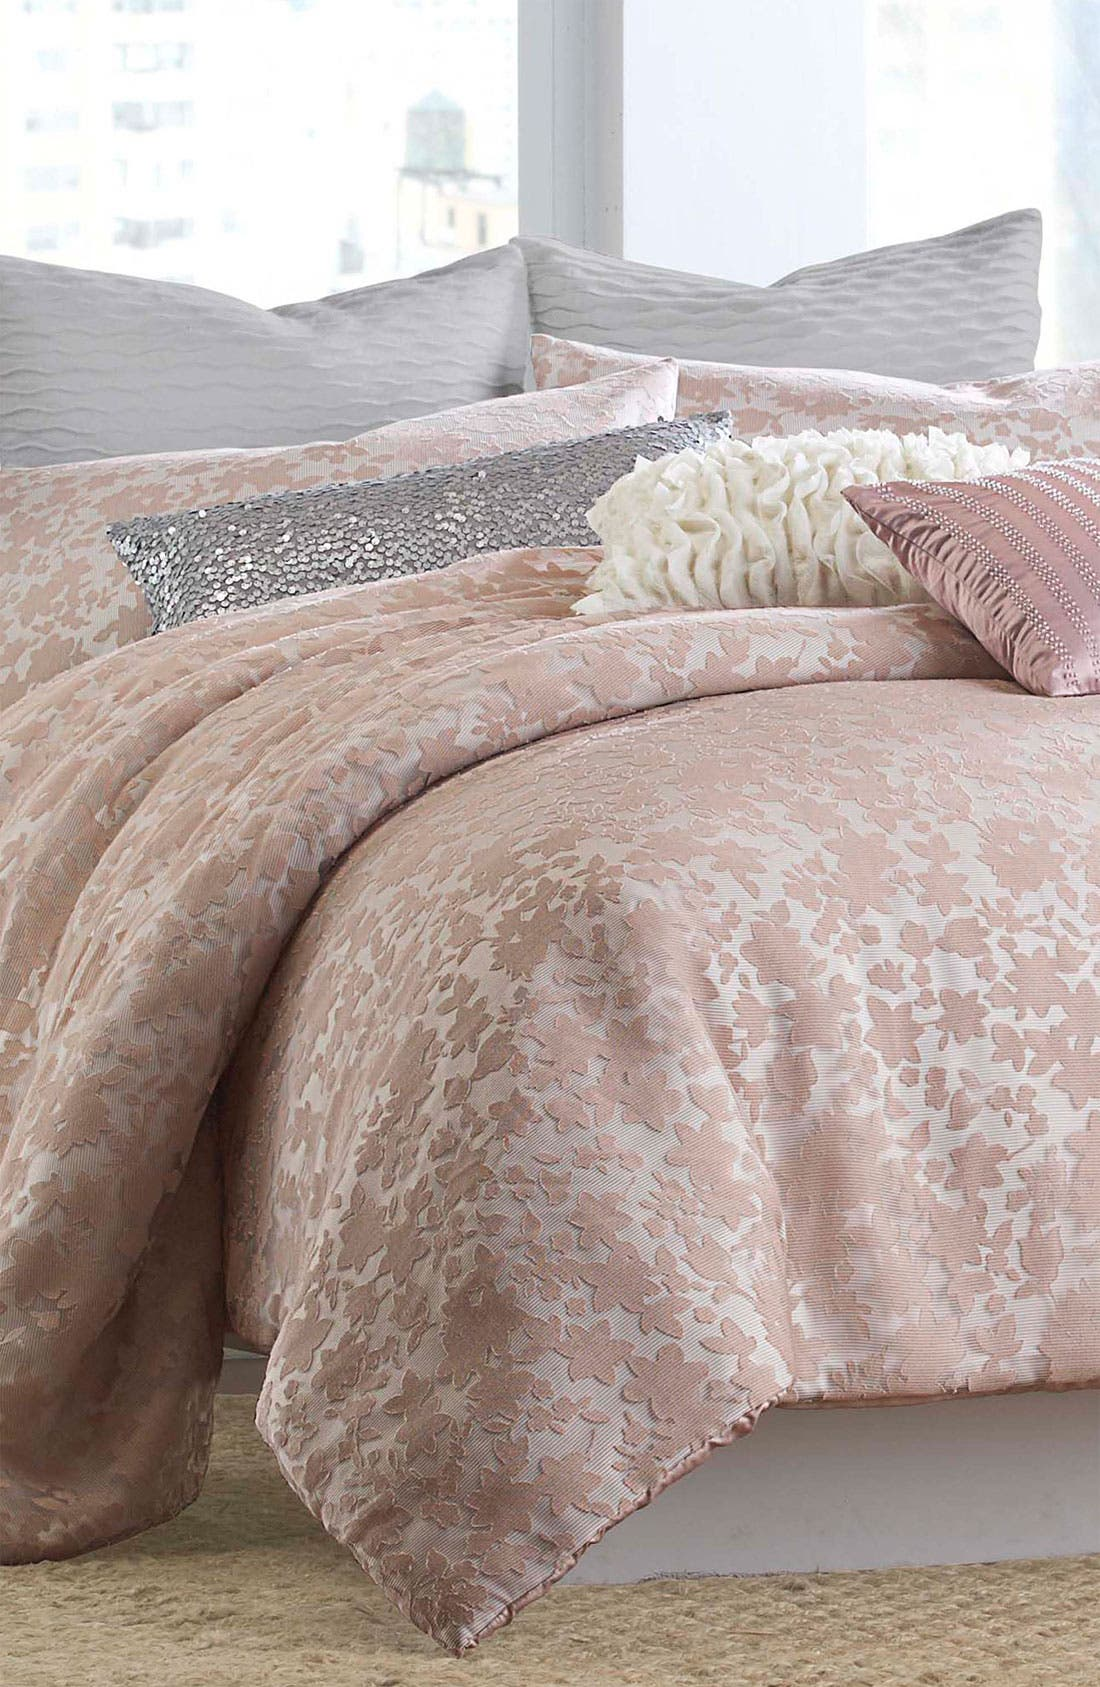 Alternate Image 1 Selected - DKNY 'Sweet Escape' Floral Comforter